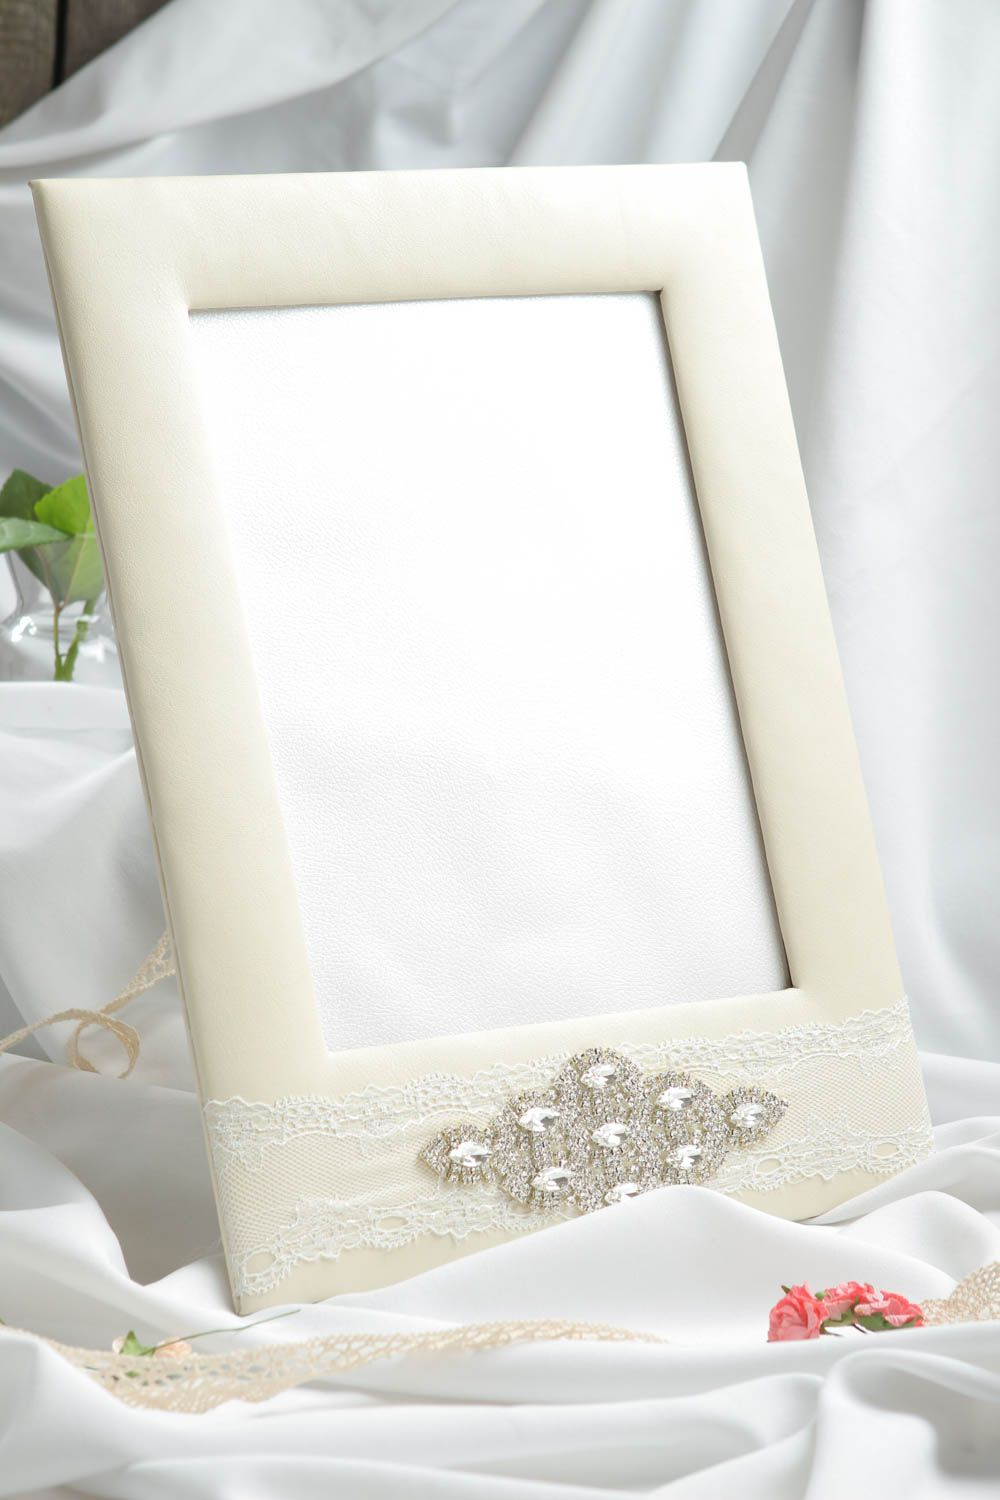 Beautiful handmade photo frame handmade accessories interior decorating photo 1